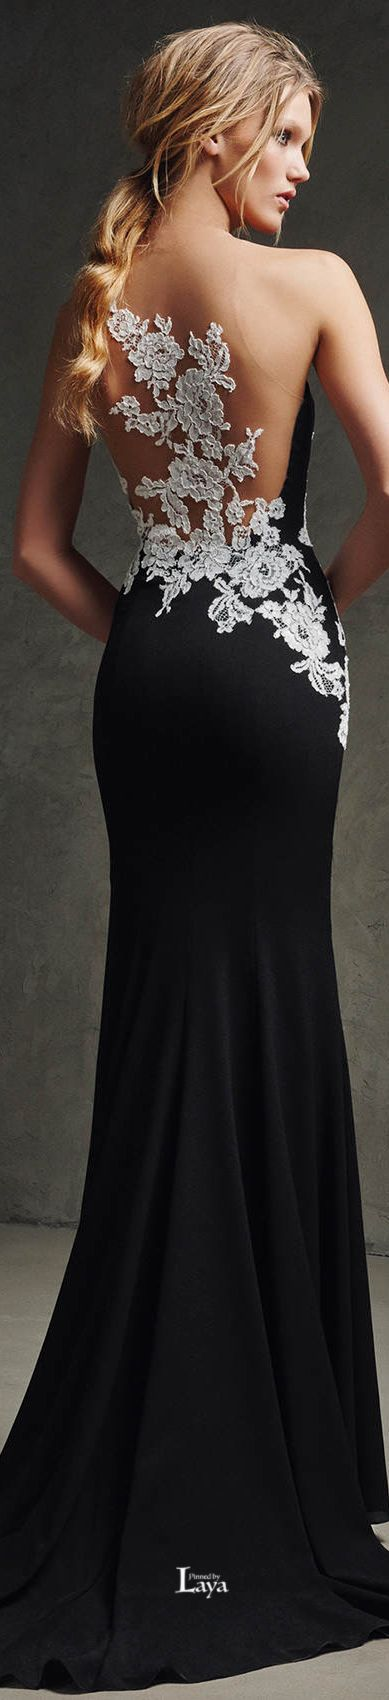 Pronovias 2016 EVENING Dresses